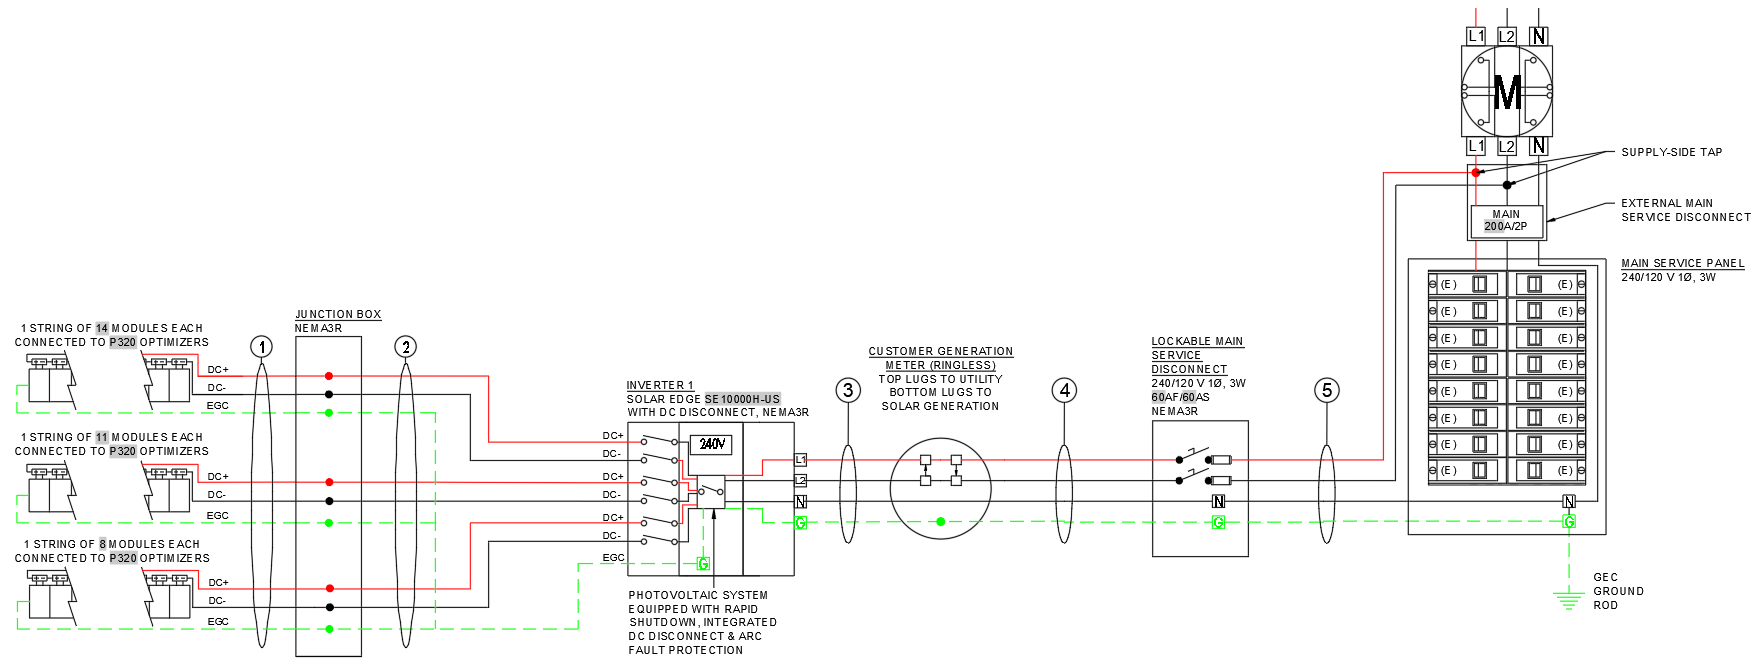 2019-01-03 15_05_31-Autodesk AutoCAD 2018 - [Drawing1.dwg].png